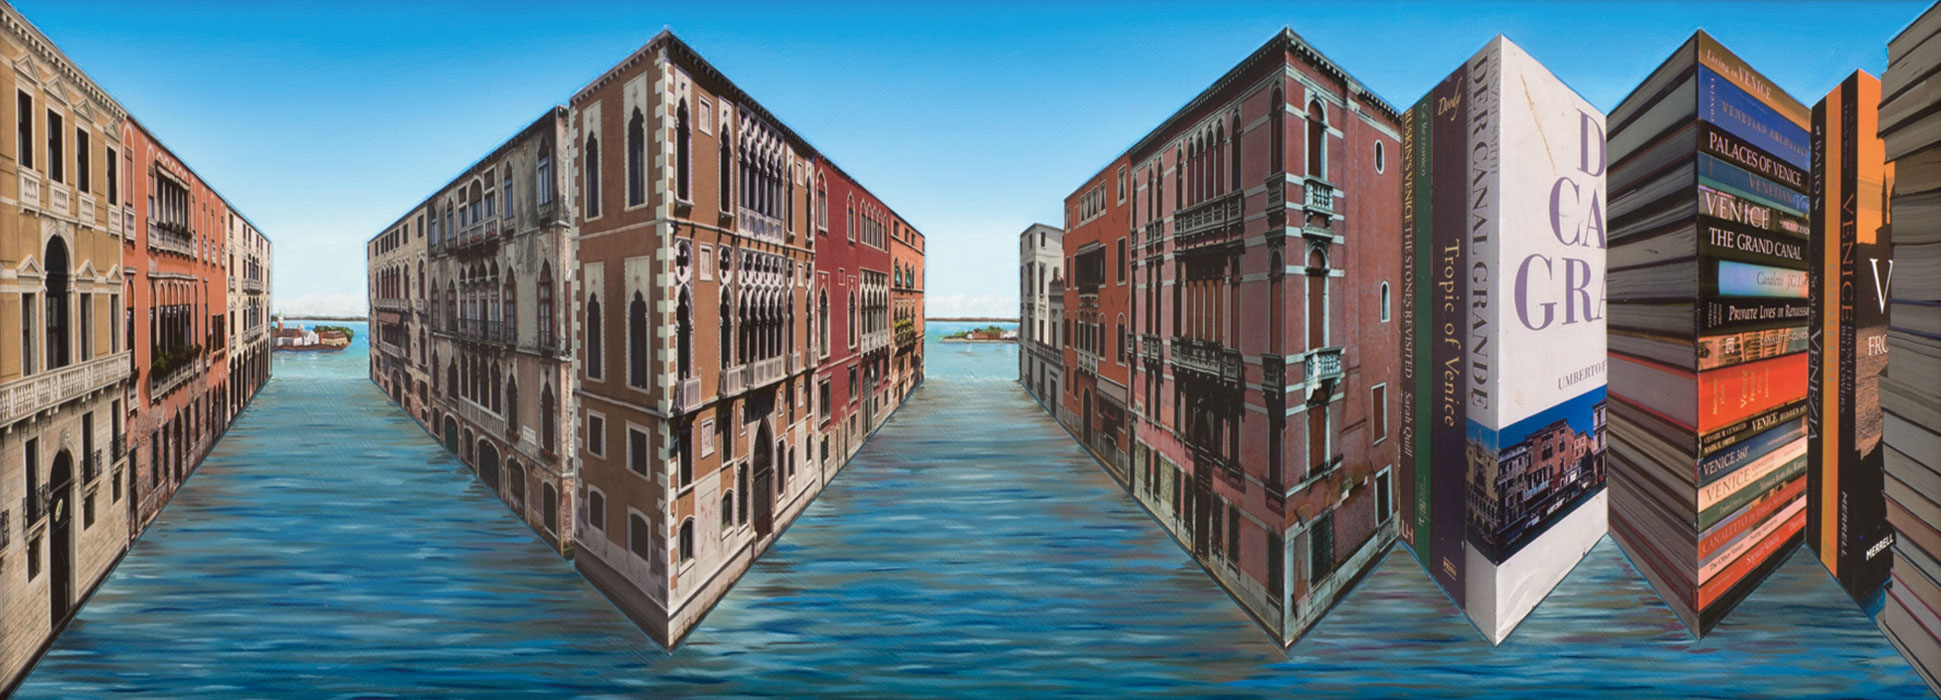 Venice Volumes <p>2013 | Edition 4 | 47 X 94 X 12 cm / 18½ x 37 x 4¾ in</p>